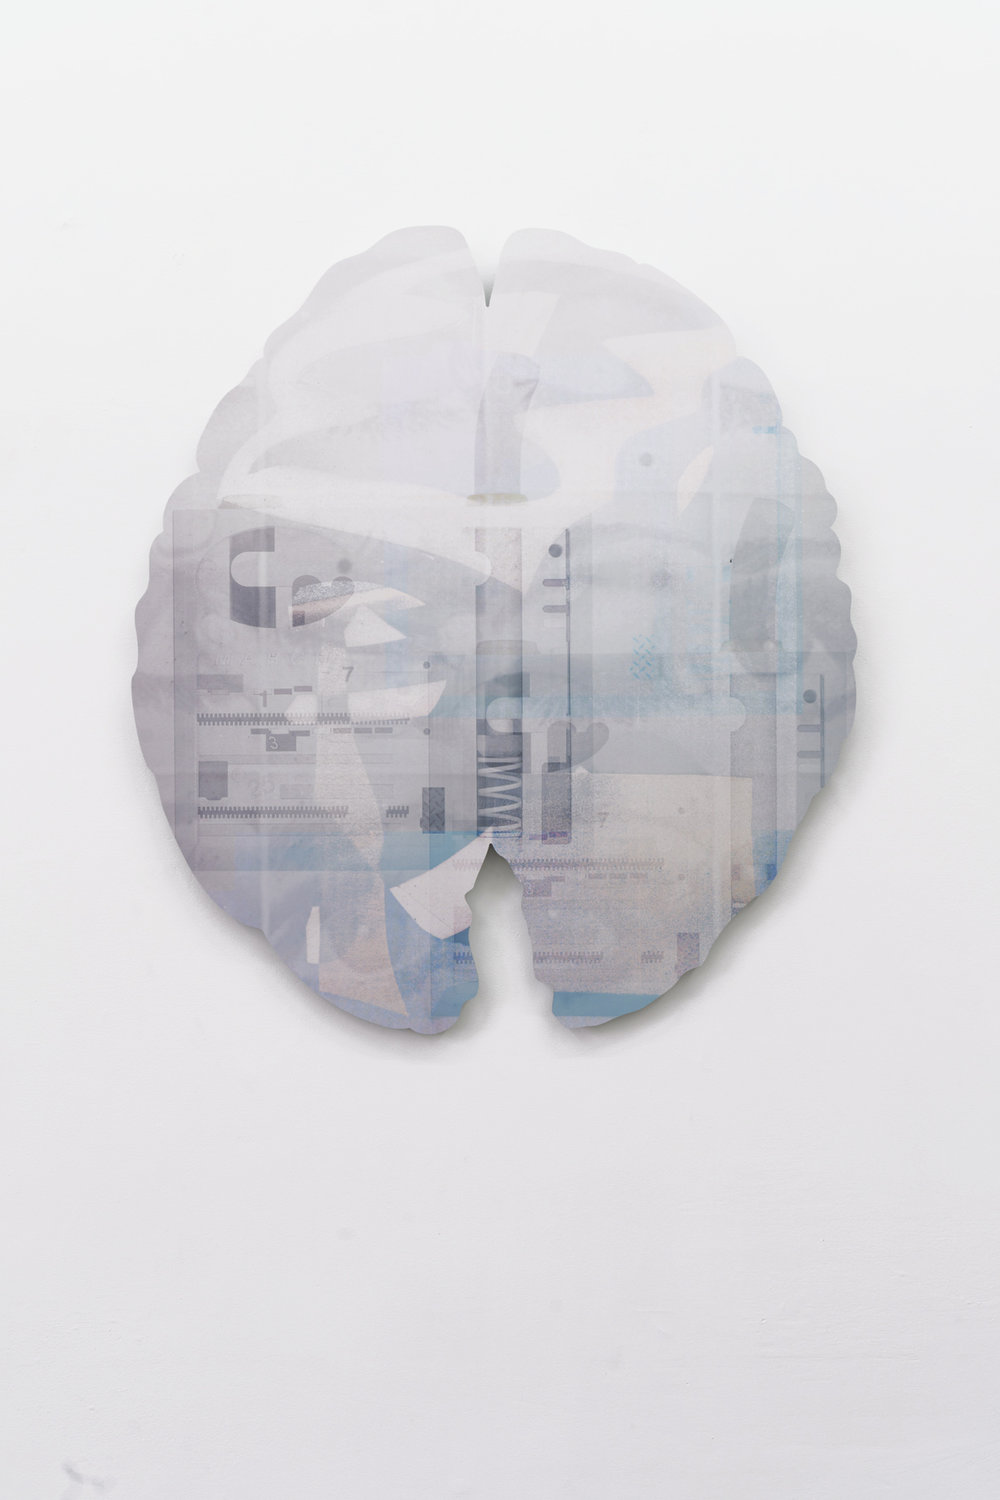 It's Our Playground,Brain content (above III), 2016